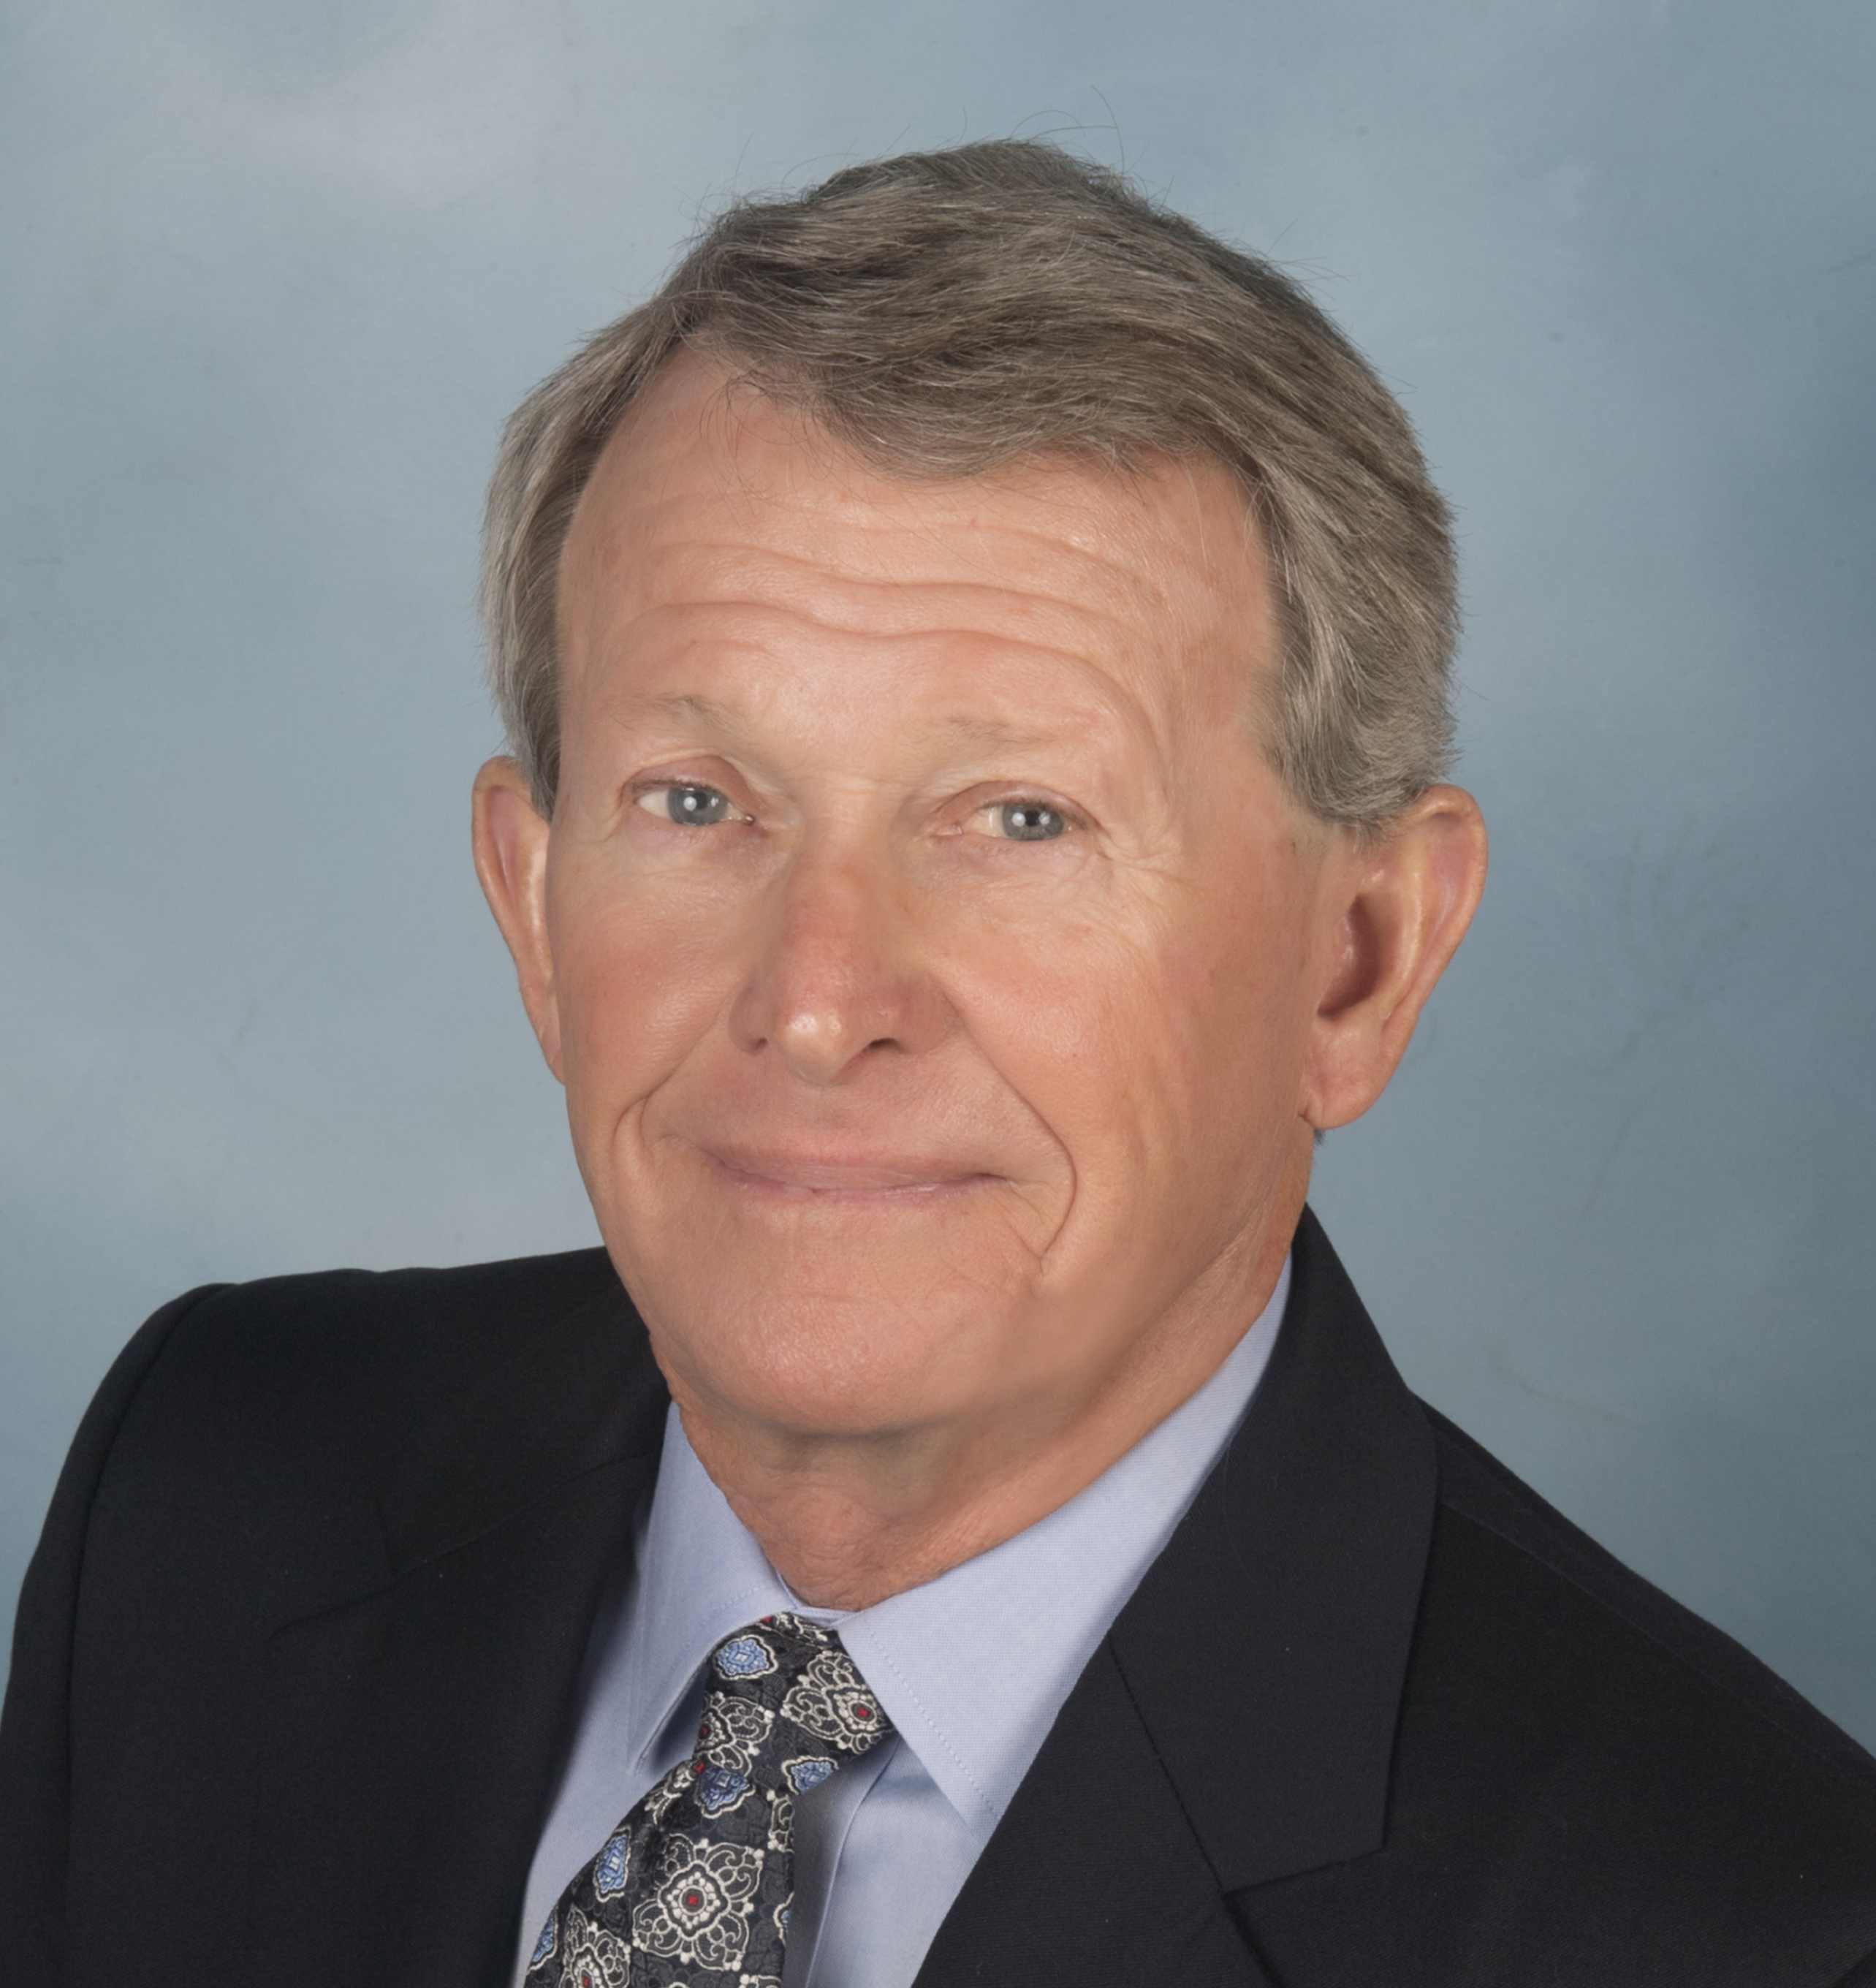 Michael K. Ryan (CastleLyons Corporation)